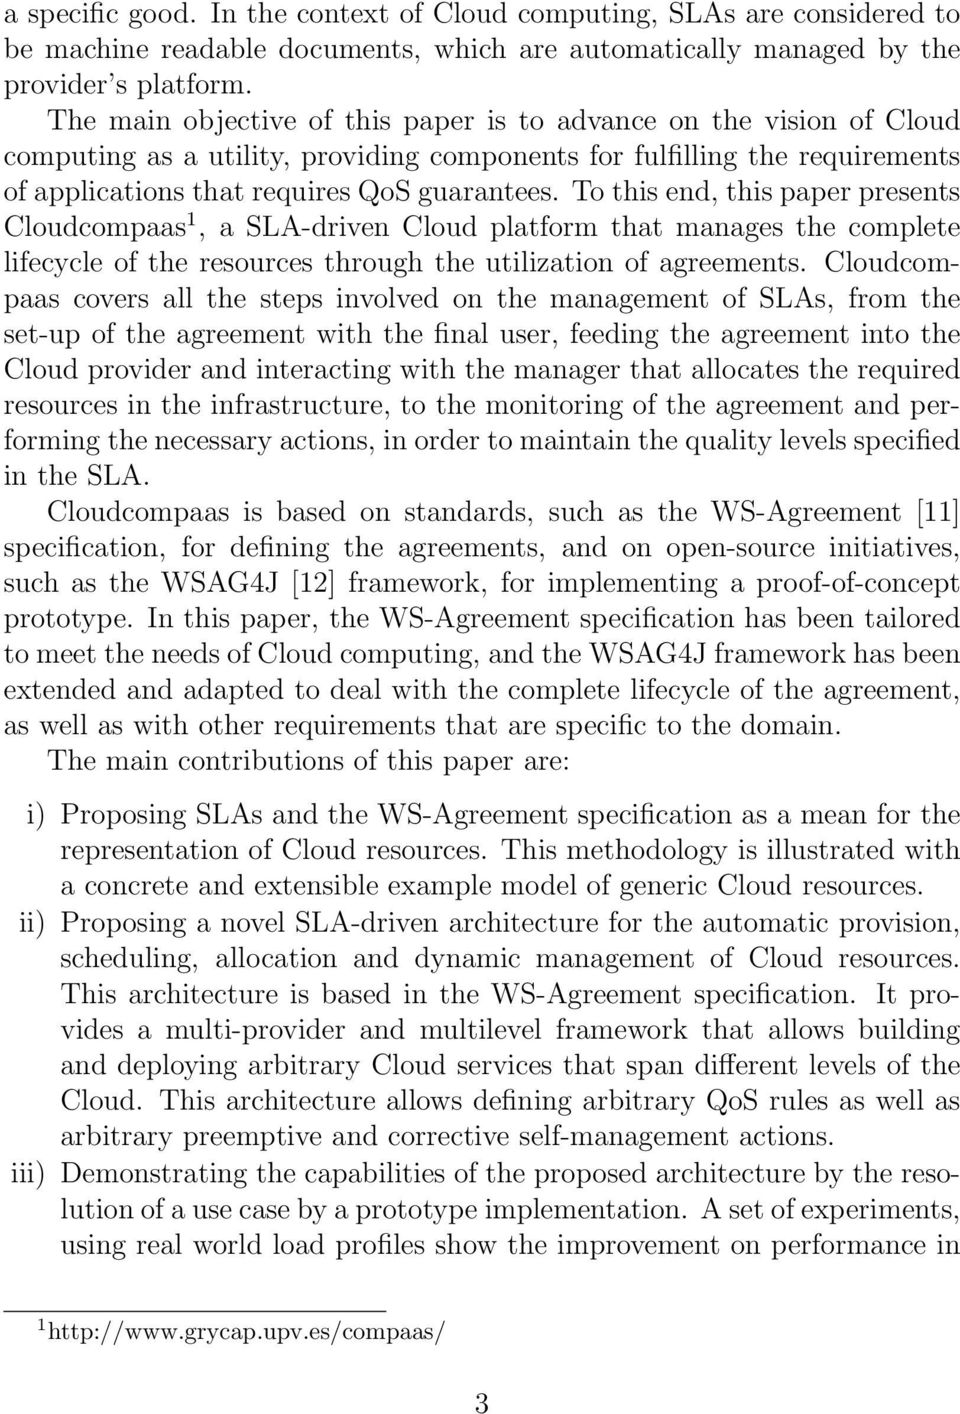 To this end, this paper presents Cloudcompaas 1, a SLA-driven Cloud platform that manages the complete lifecycle of the resources through the utilization of agreements.